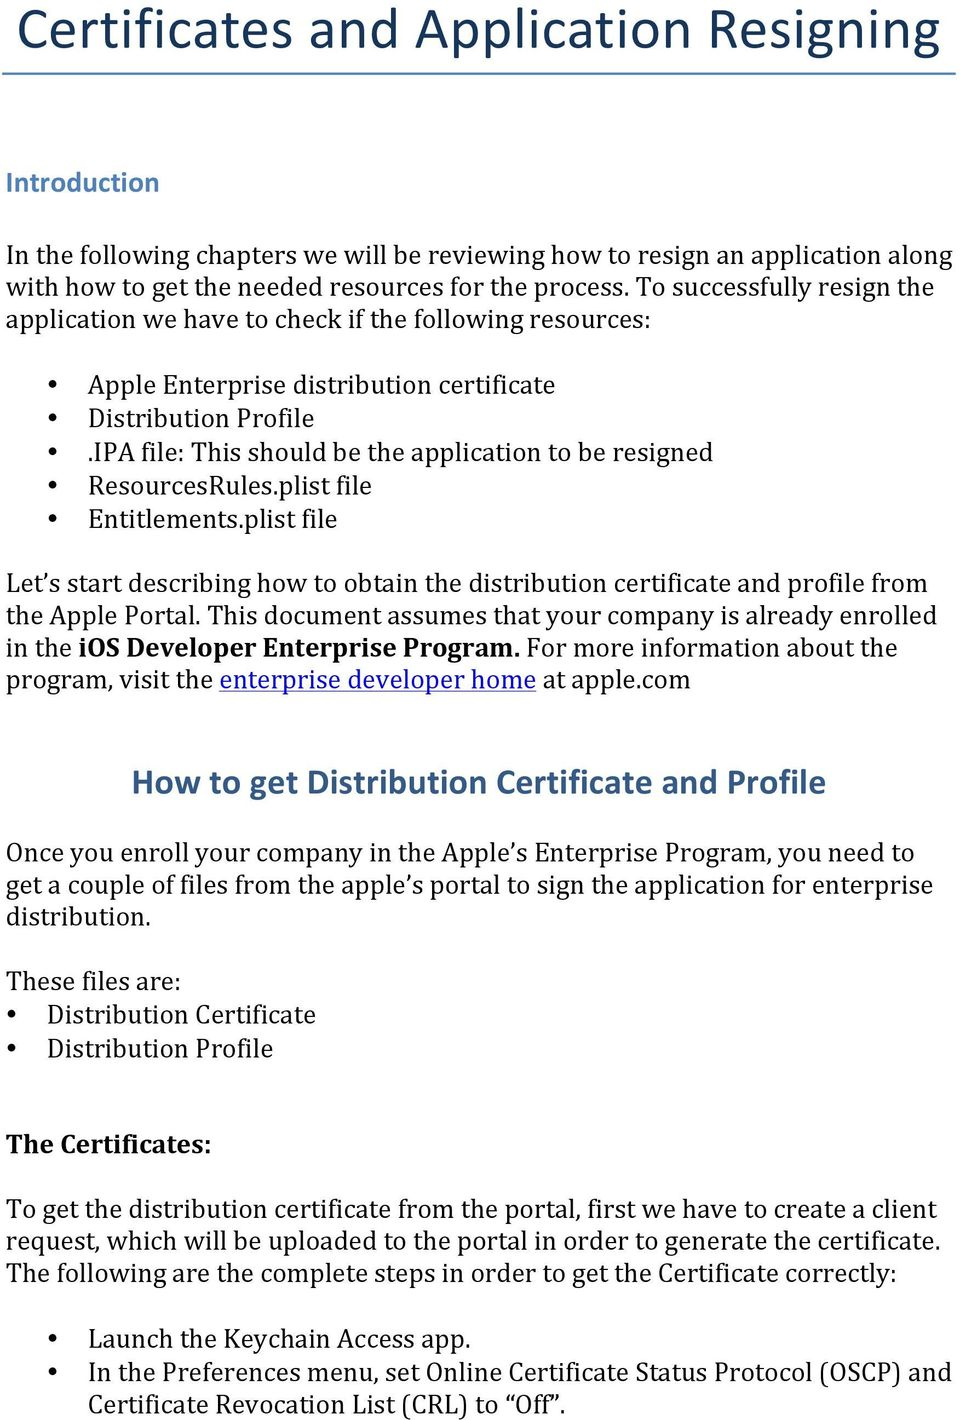 Certificates and Application Resigning - PDF